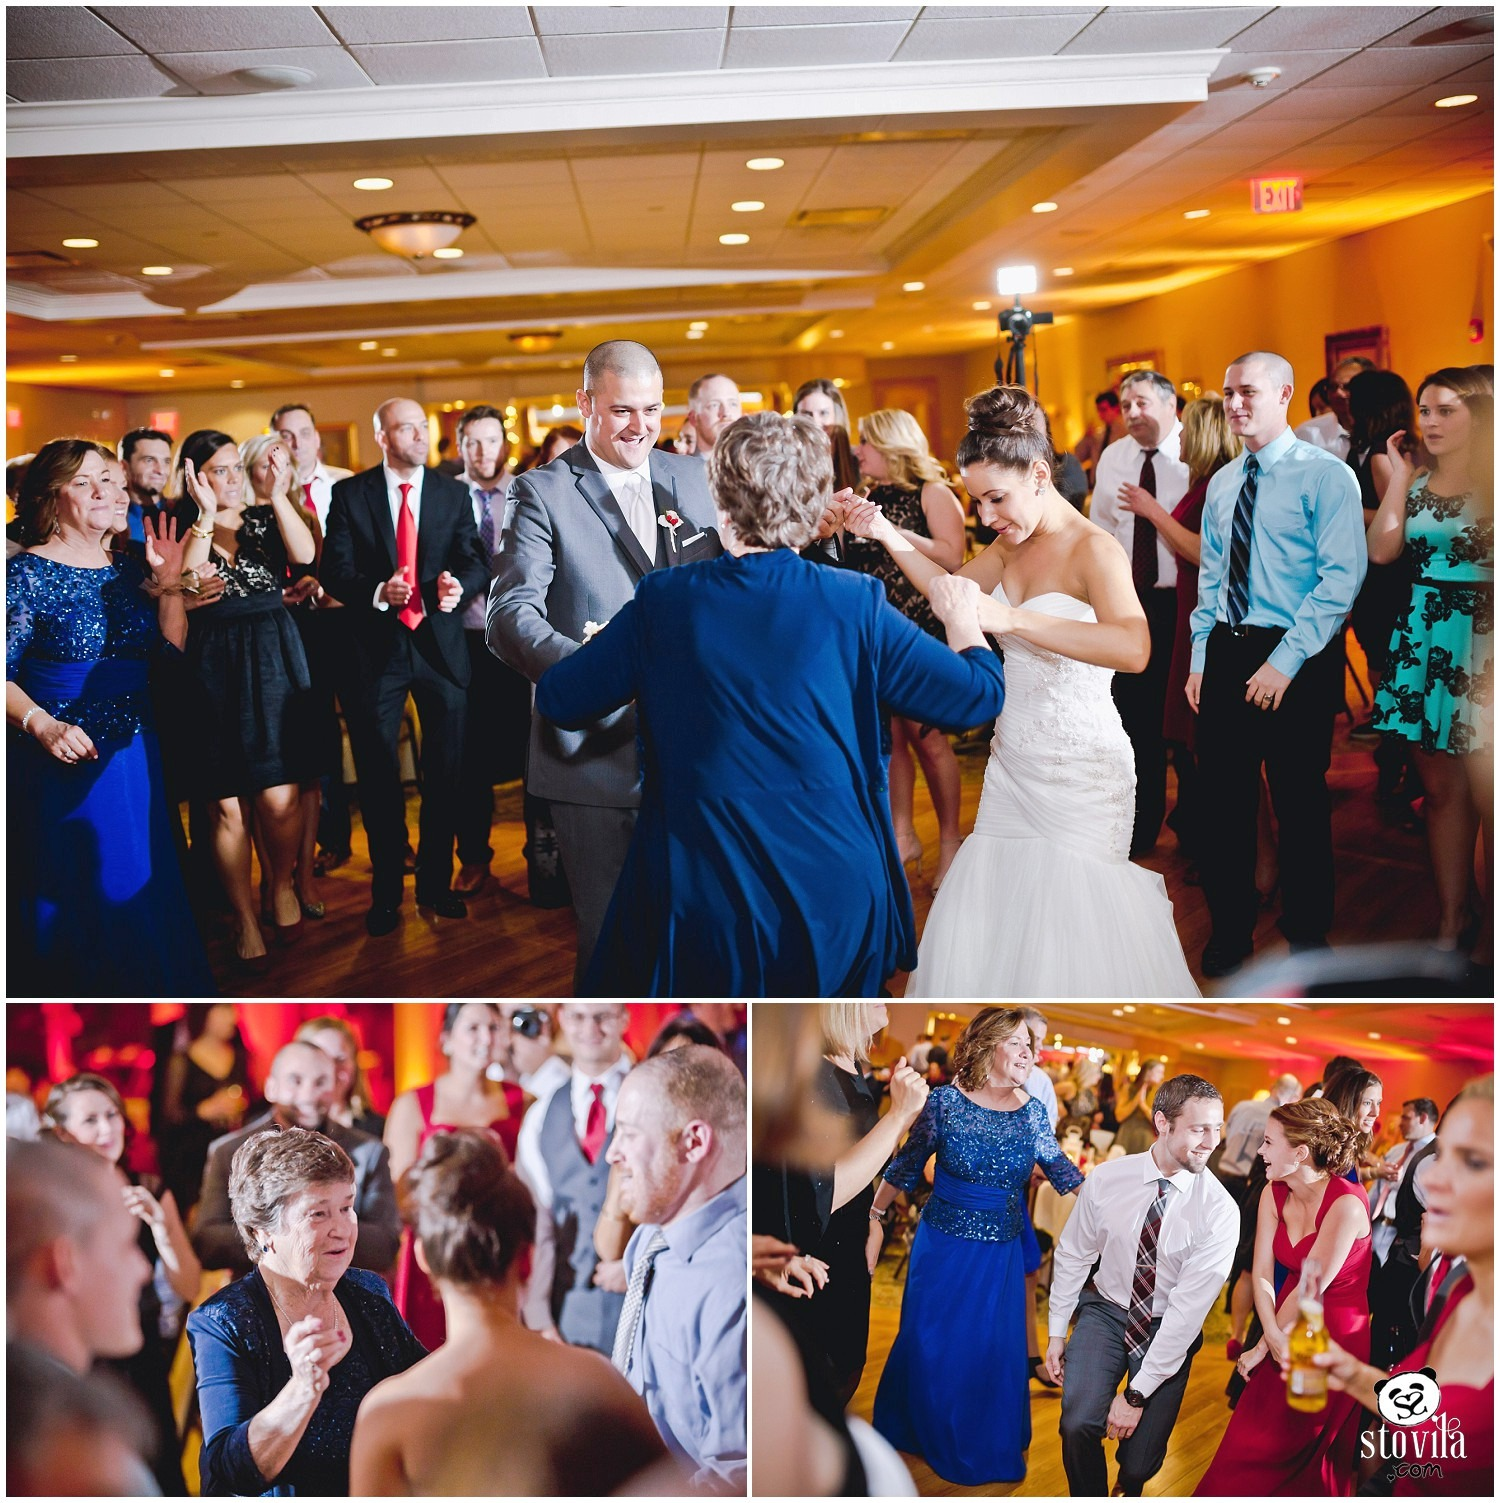 KB_Tirrell Room Wedding, Boston - Gate of Heaven Church - STOVILA Photography (29)